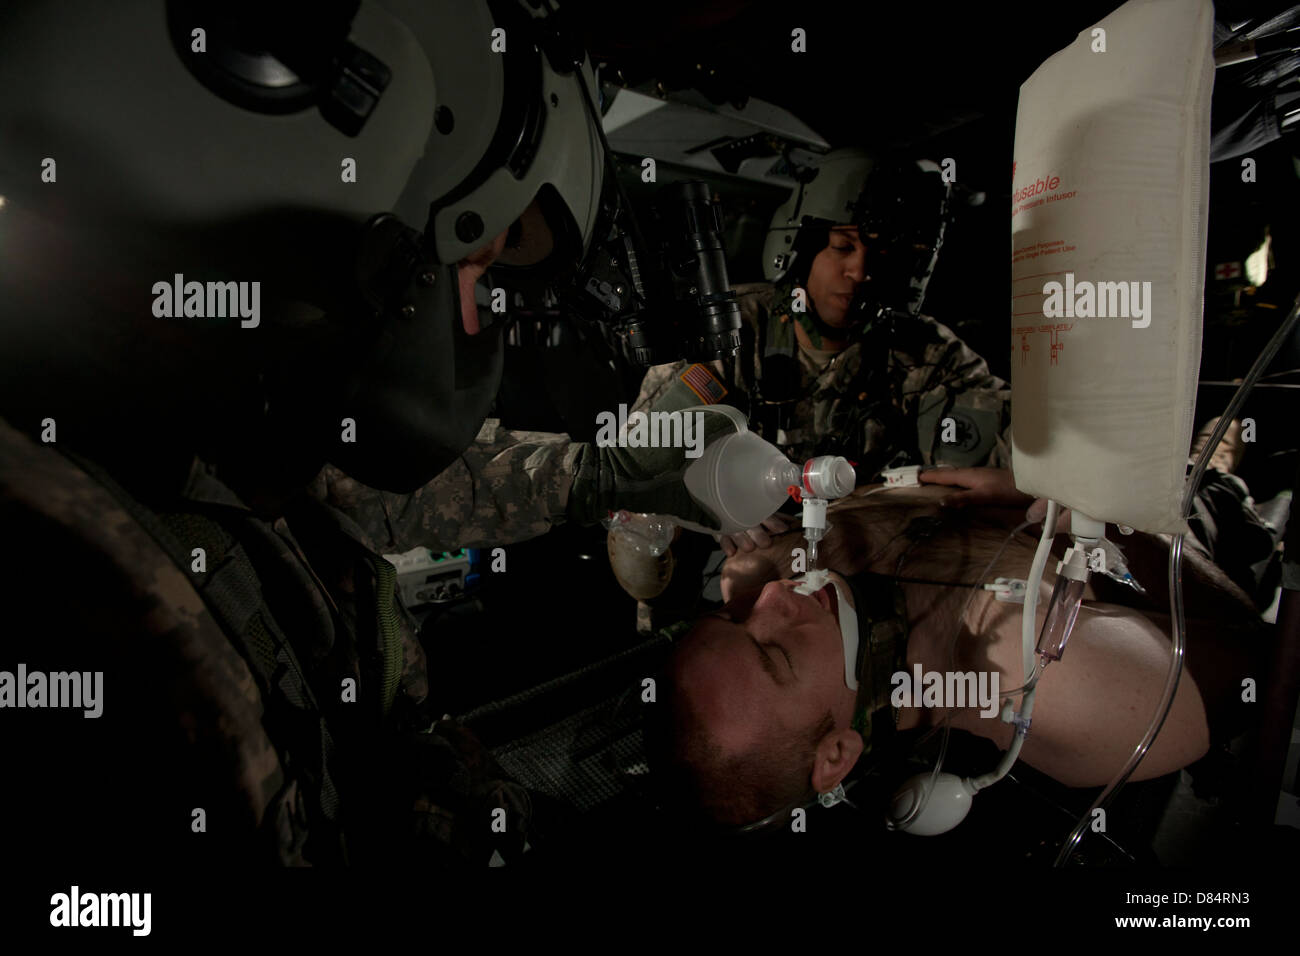 U.S. Army medics simulating ventilation of a mock patient aboard a UH-60 Blackhawk - Stock Image